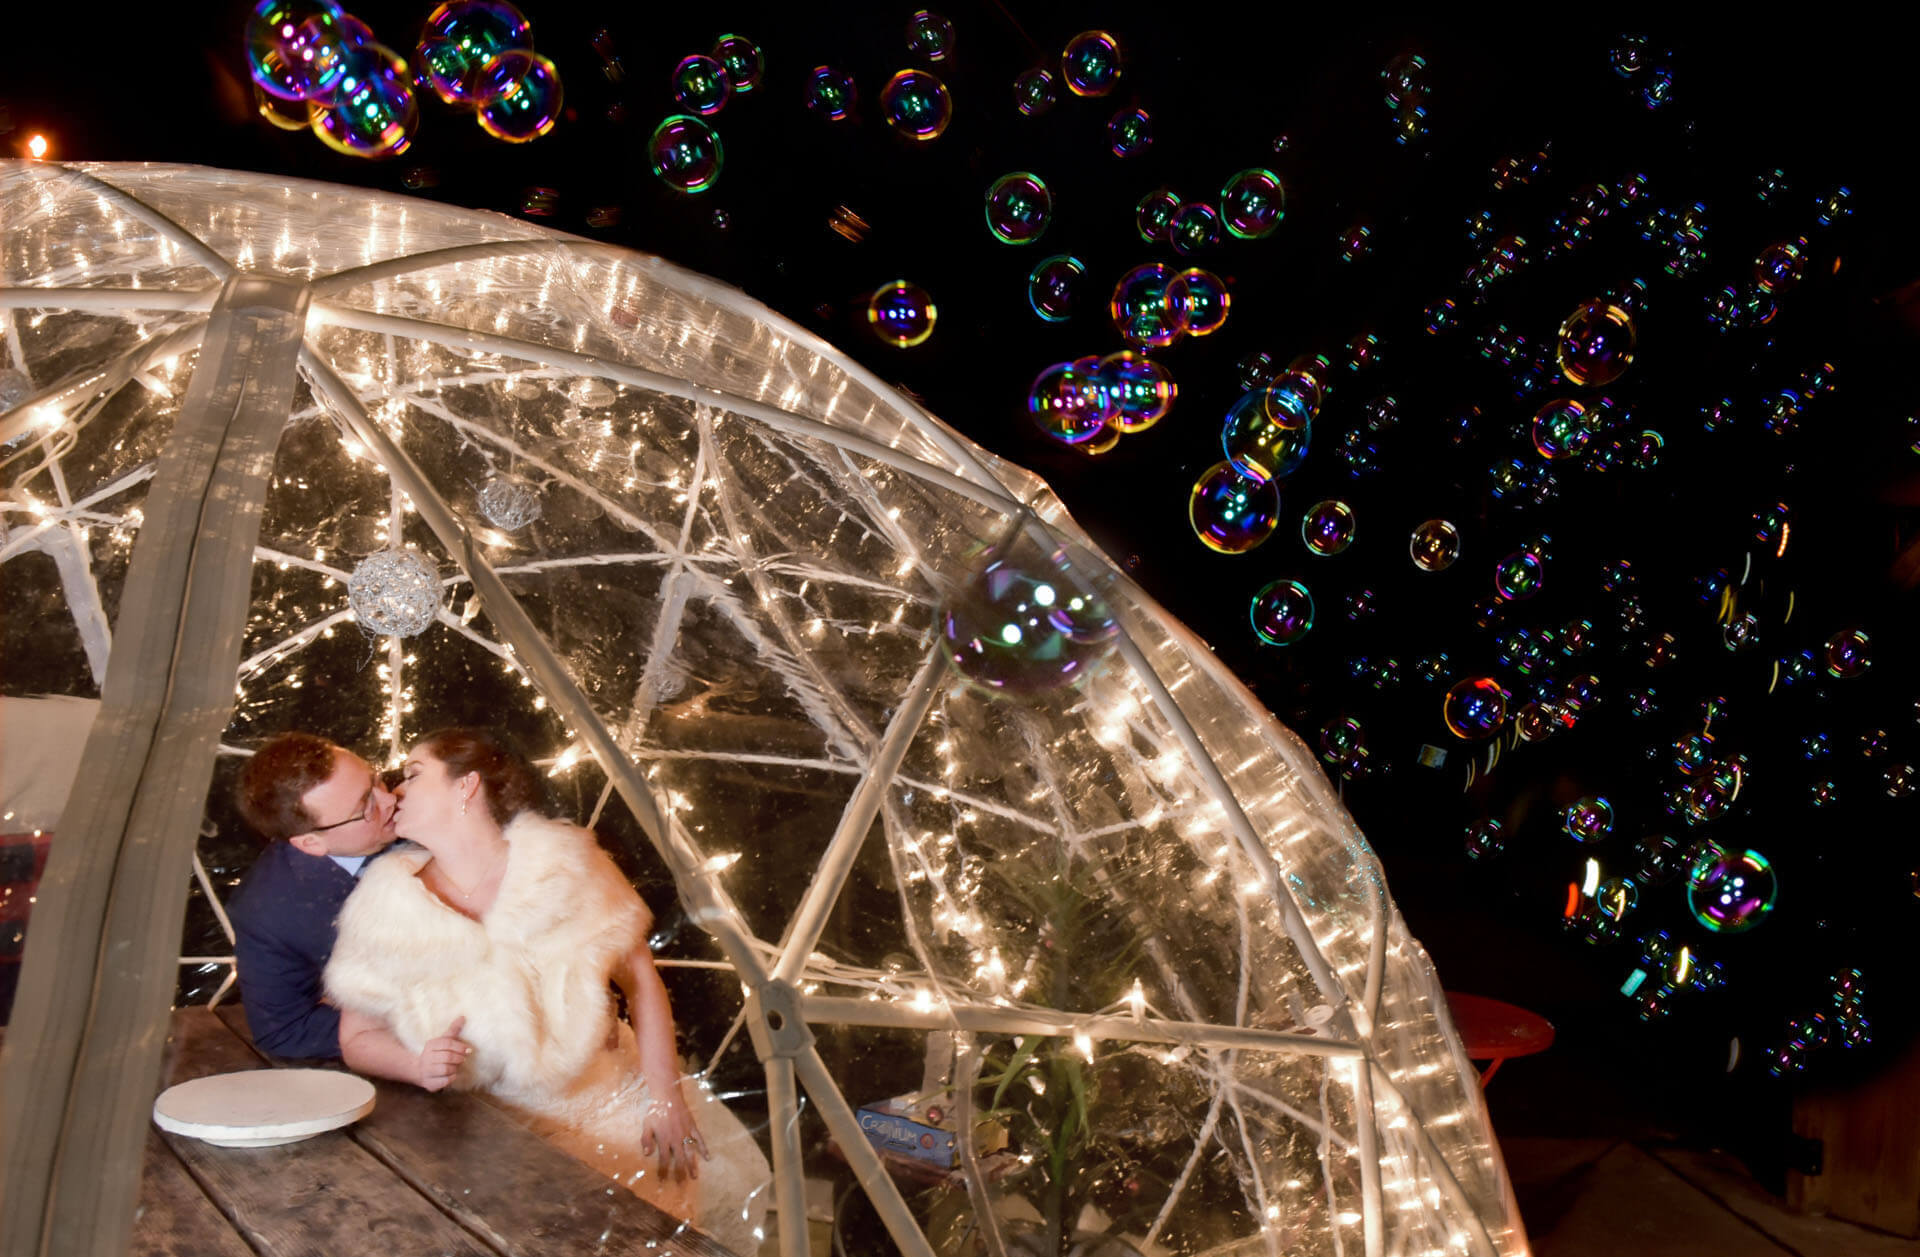 The bride and groom snuggle in an isolation igloo during their winter wedding reception at Detroit Fleat in Ferndale, Michigan.